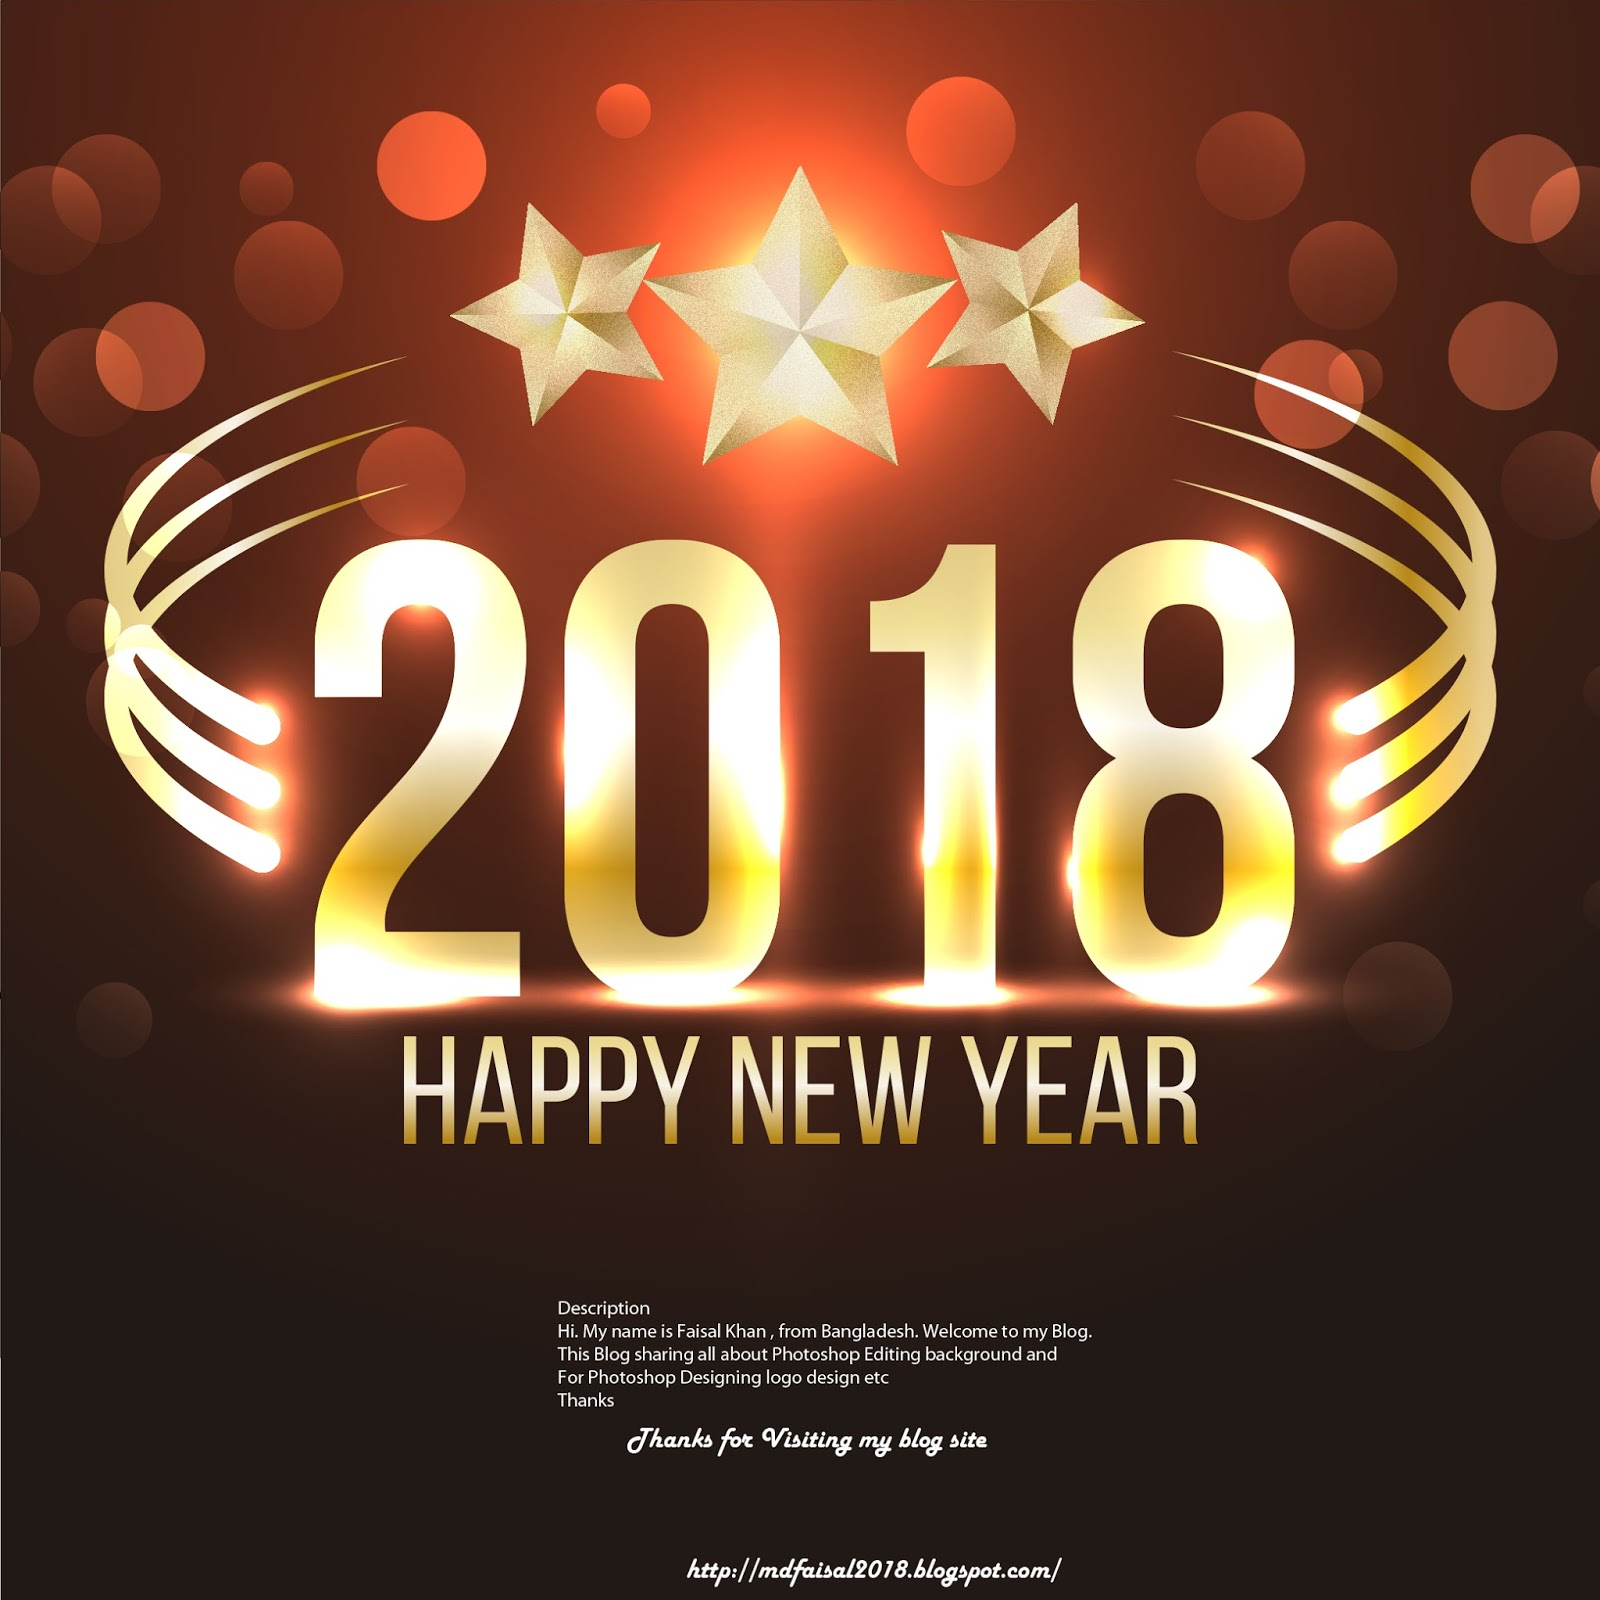 on this day individuals greet each other by sending happy new year photos and new year wishes and happy new year pictures in hd 2018 to their friends and